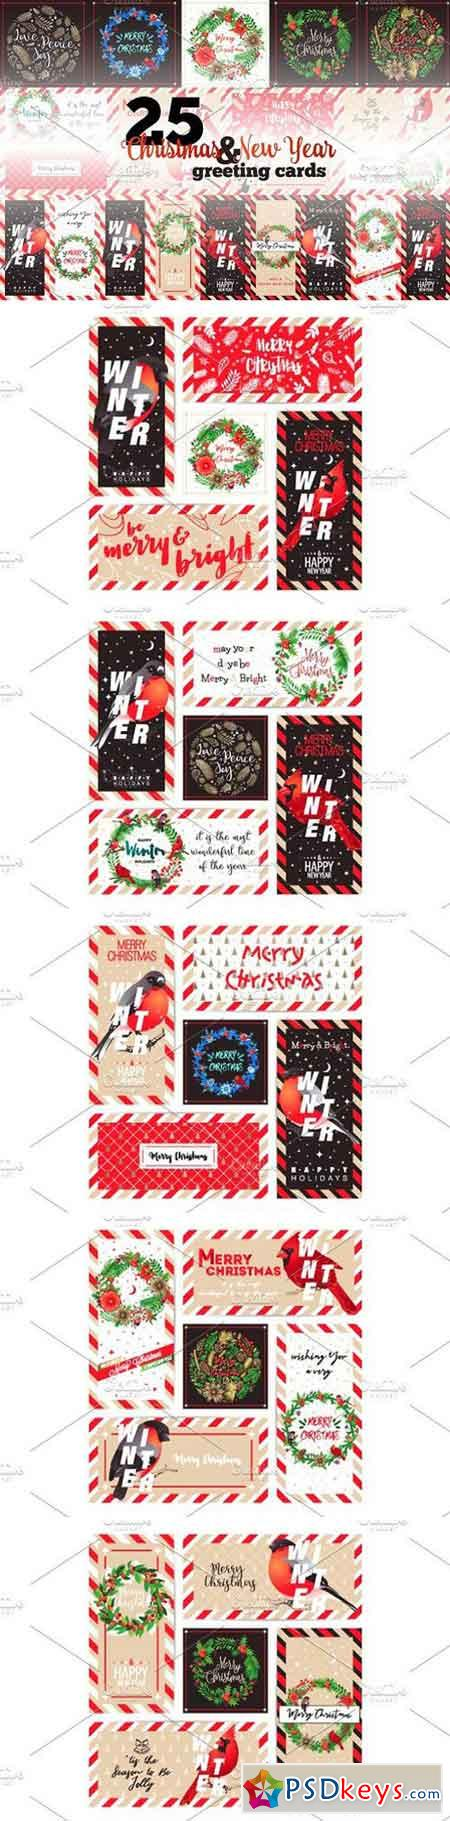 Christmas & New Year Greeting Cards 1134299